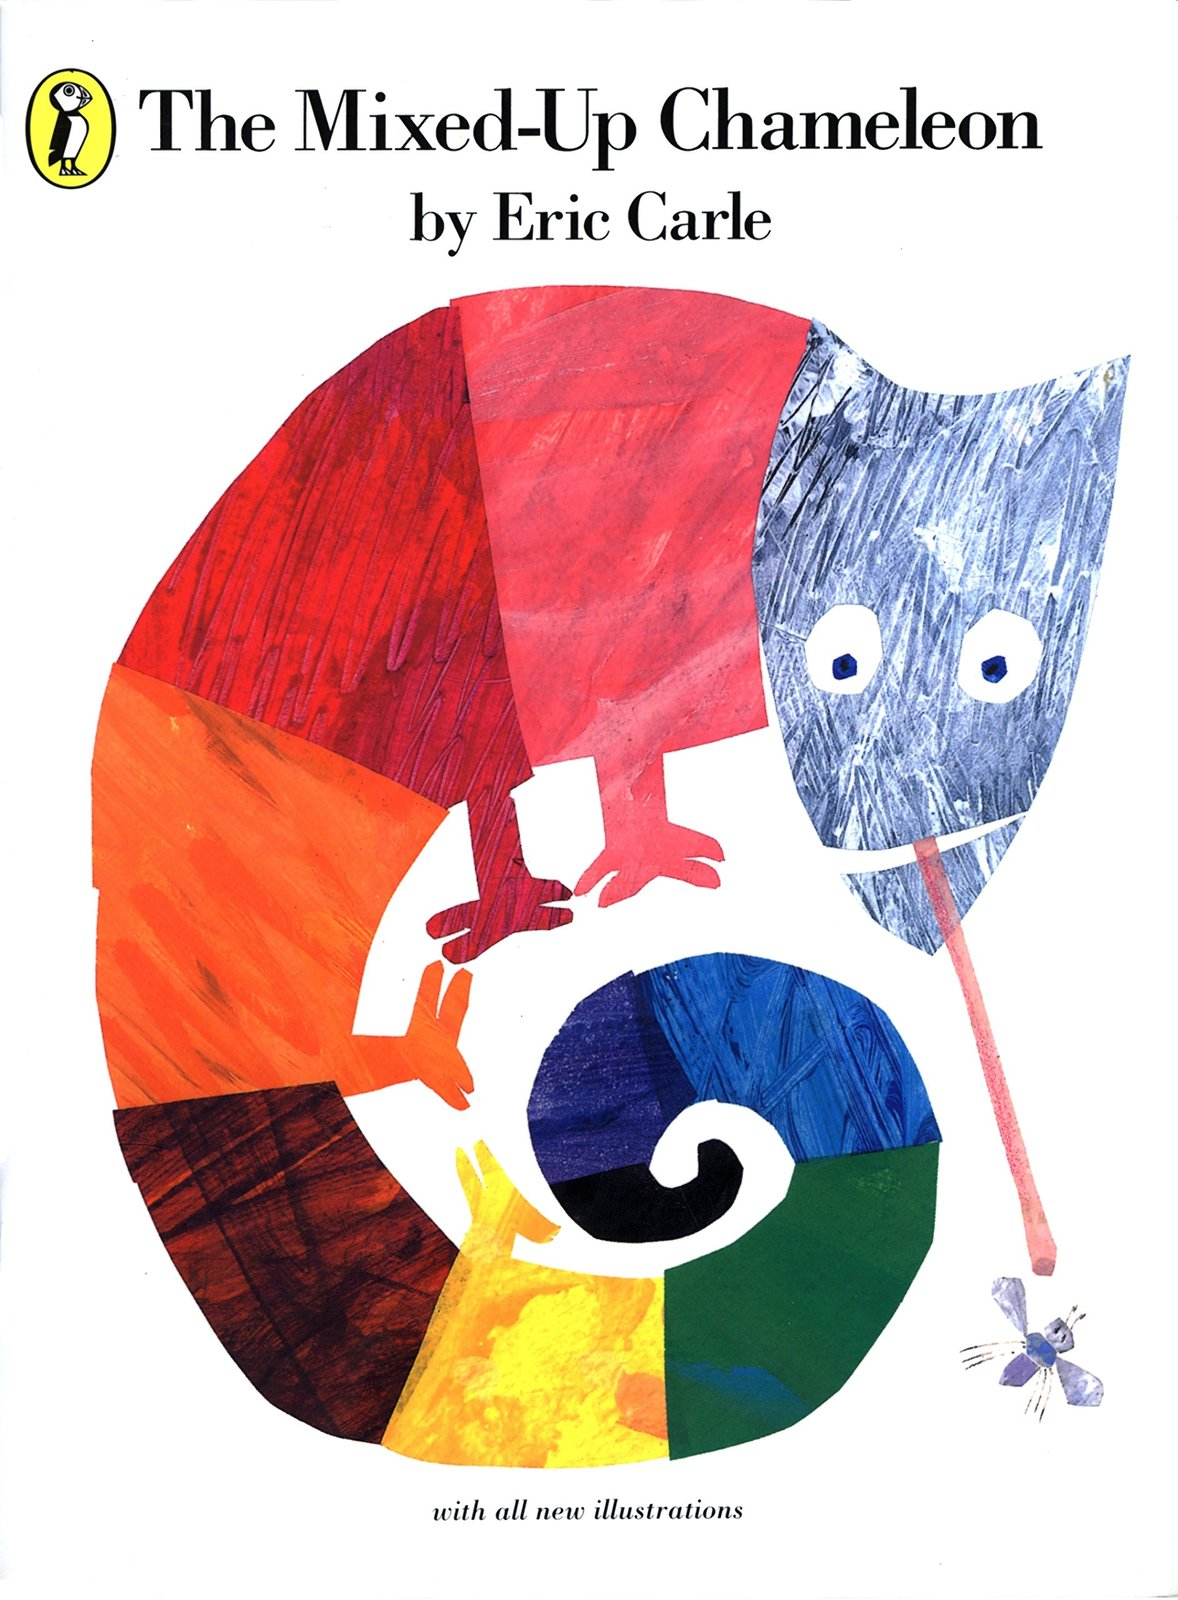 The Mixed-up Chameleon by Eric Carle image